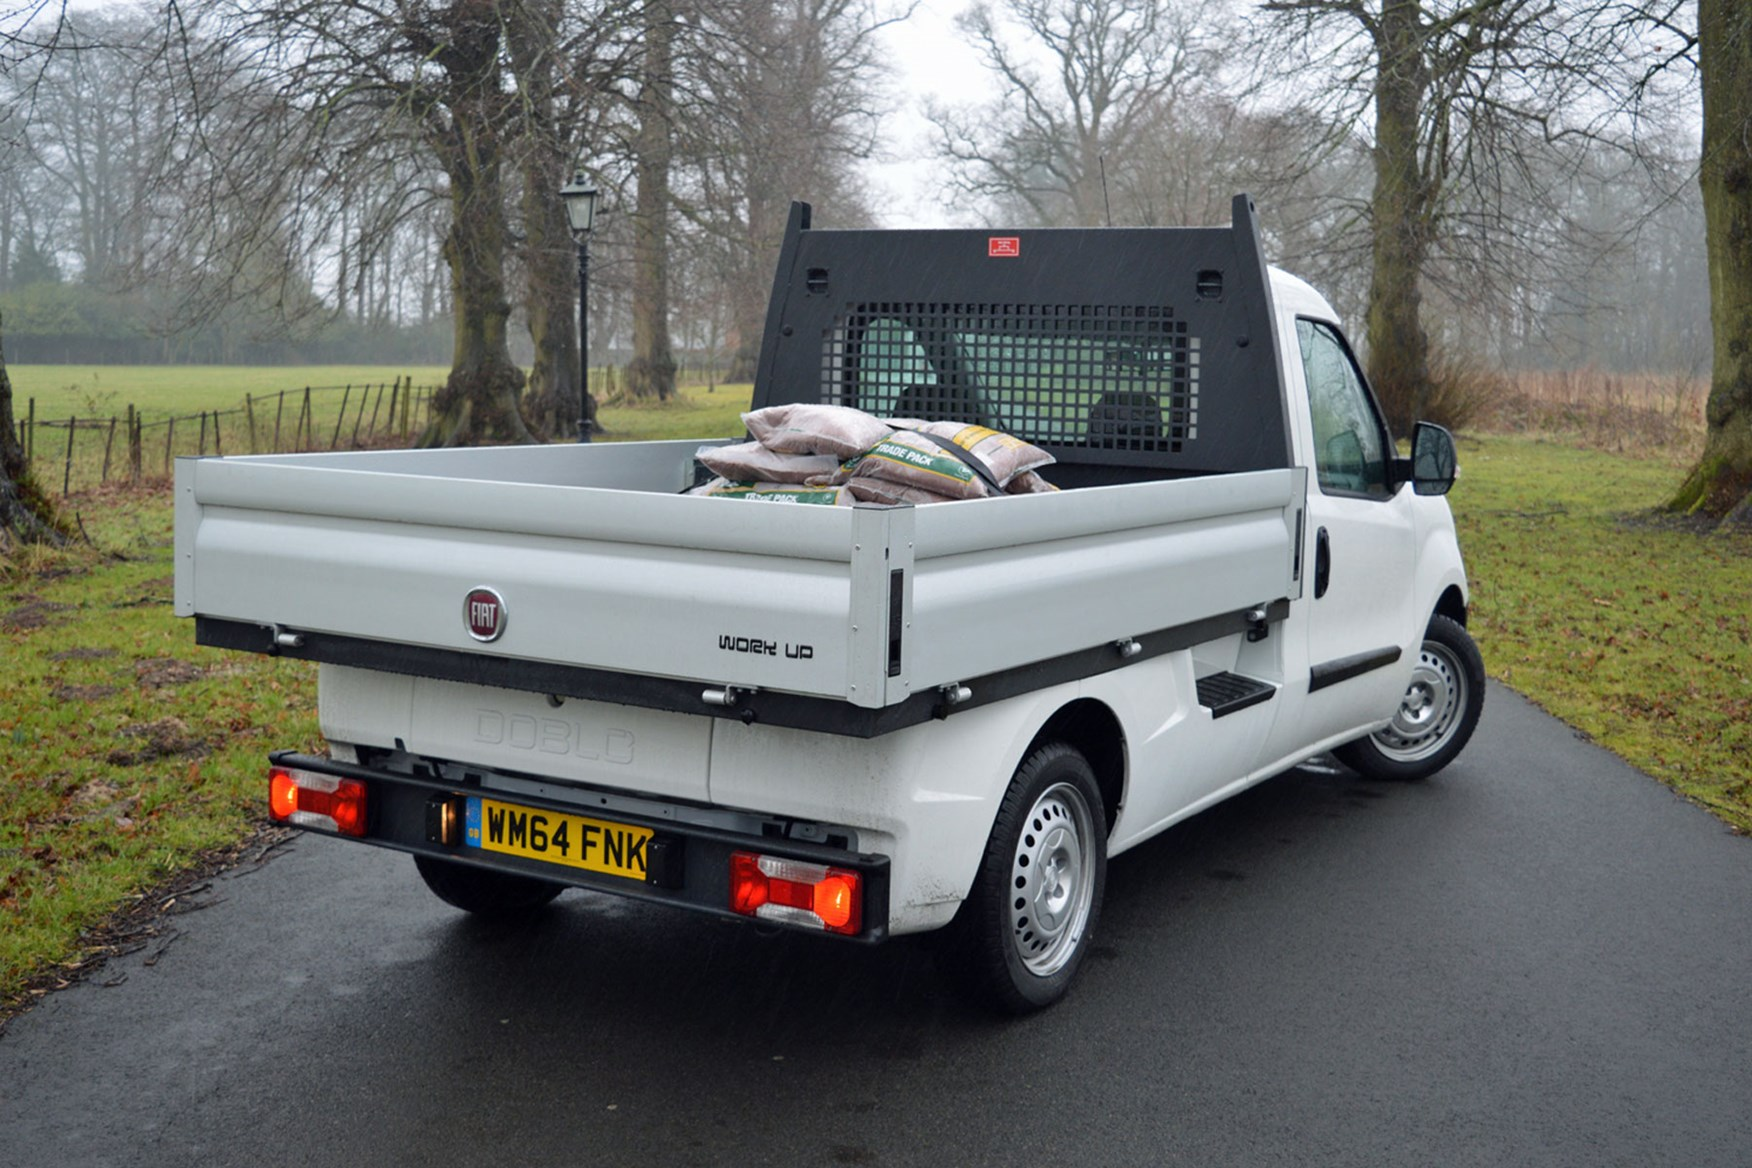 Fiat Doblo review - Work Up dropside pickup, rear view, white, 2015